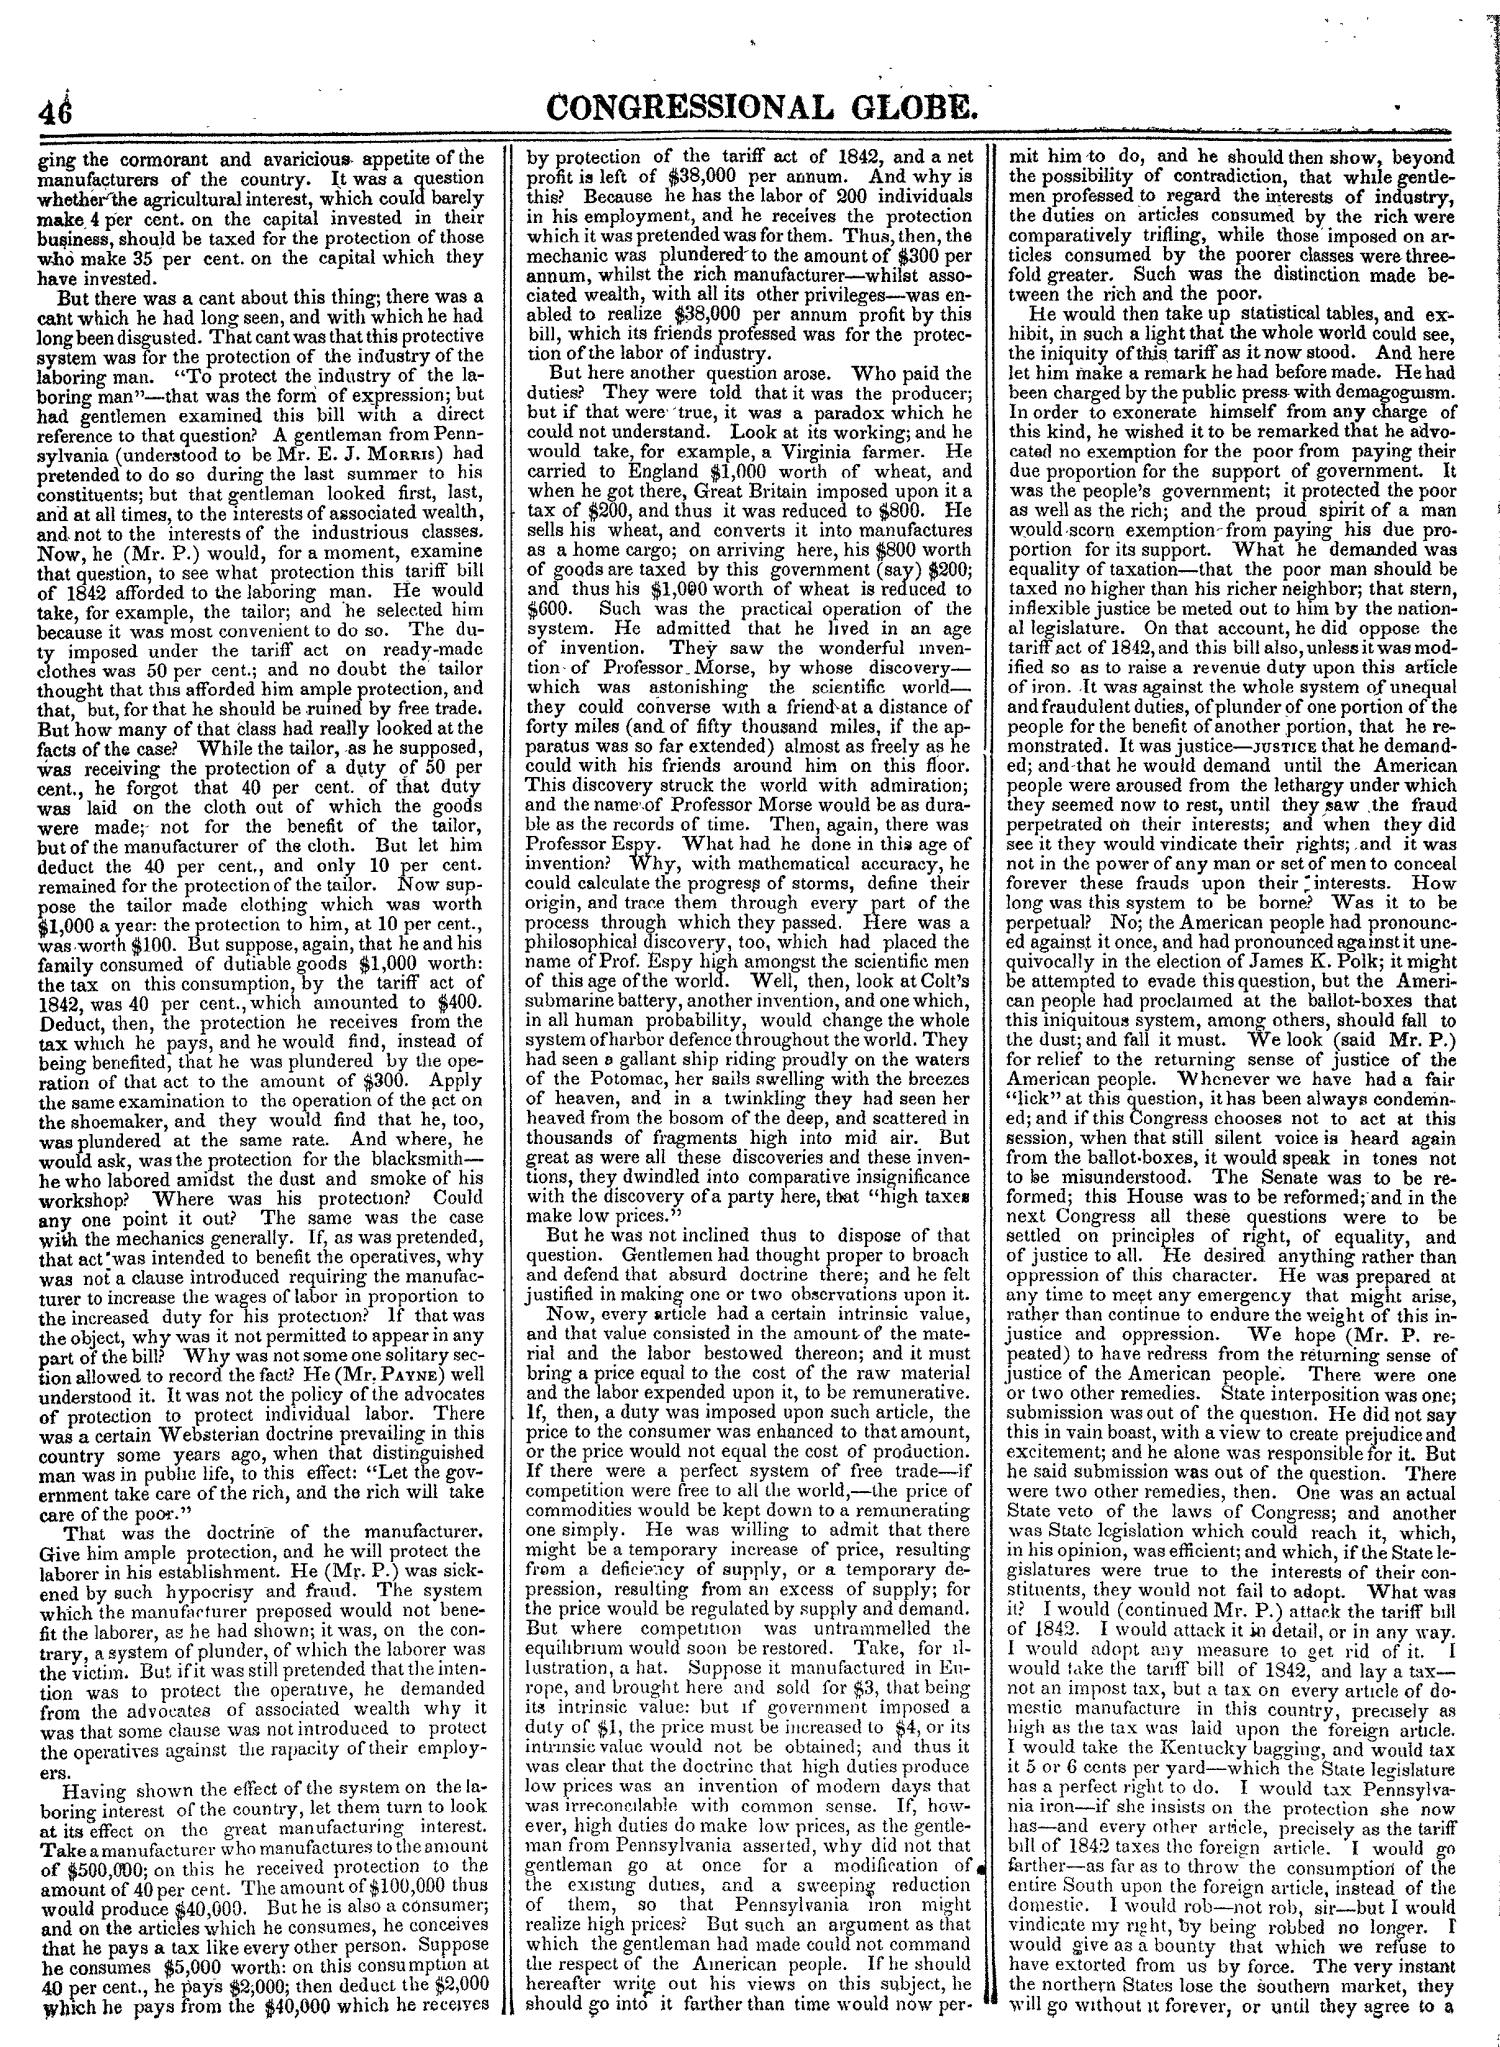 The Congressional Globe, Volume 14: Twenty-Eighth Congress, Second Session                                                                                                      46